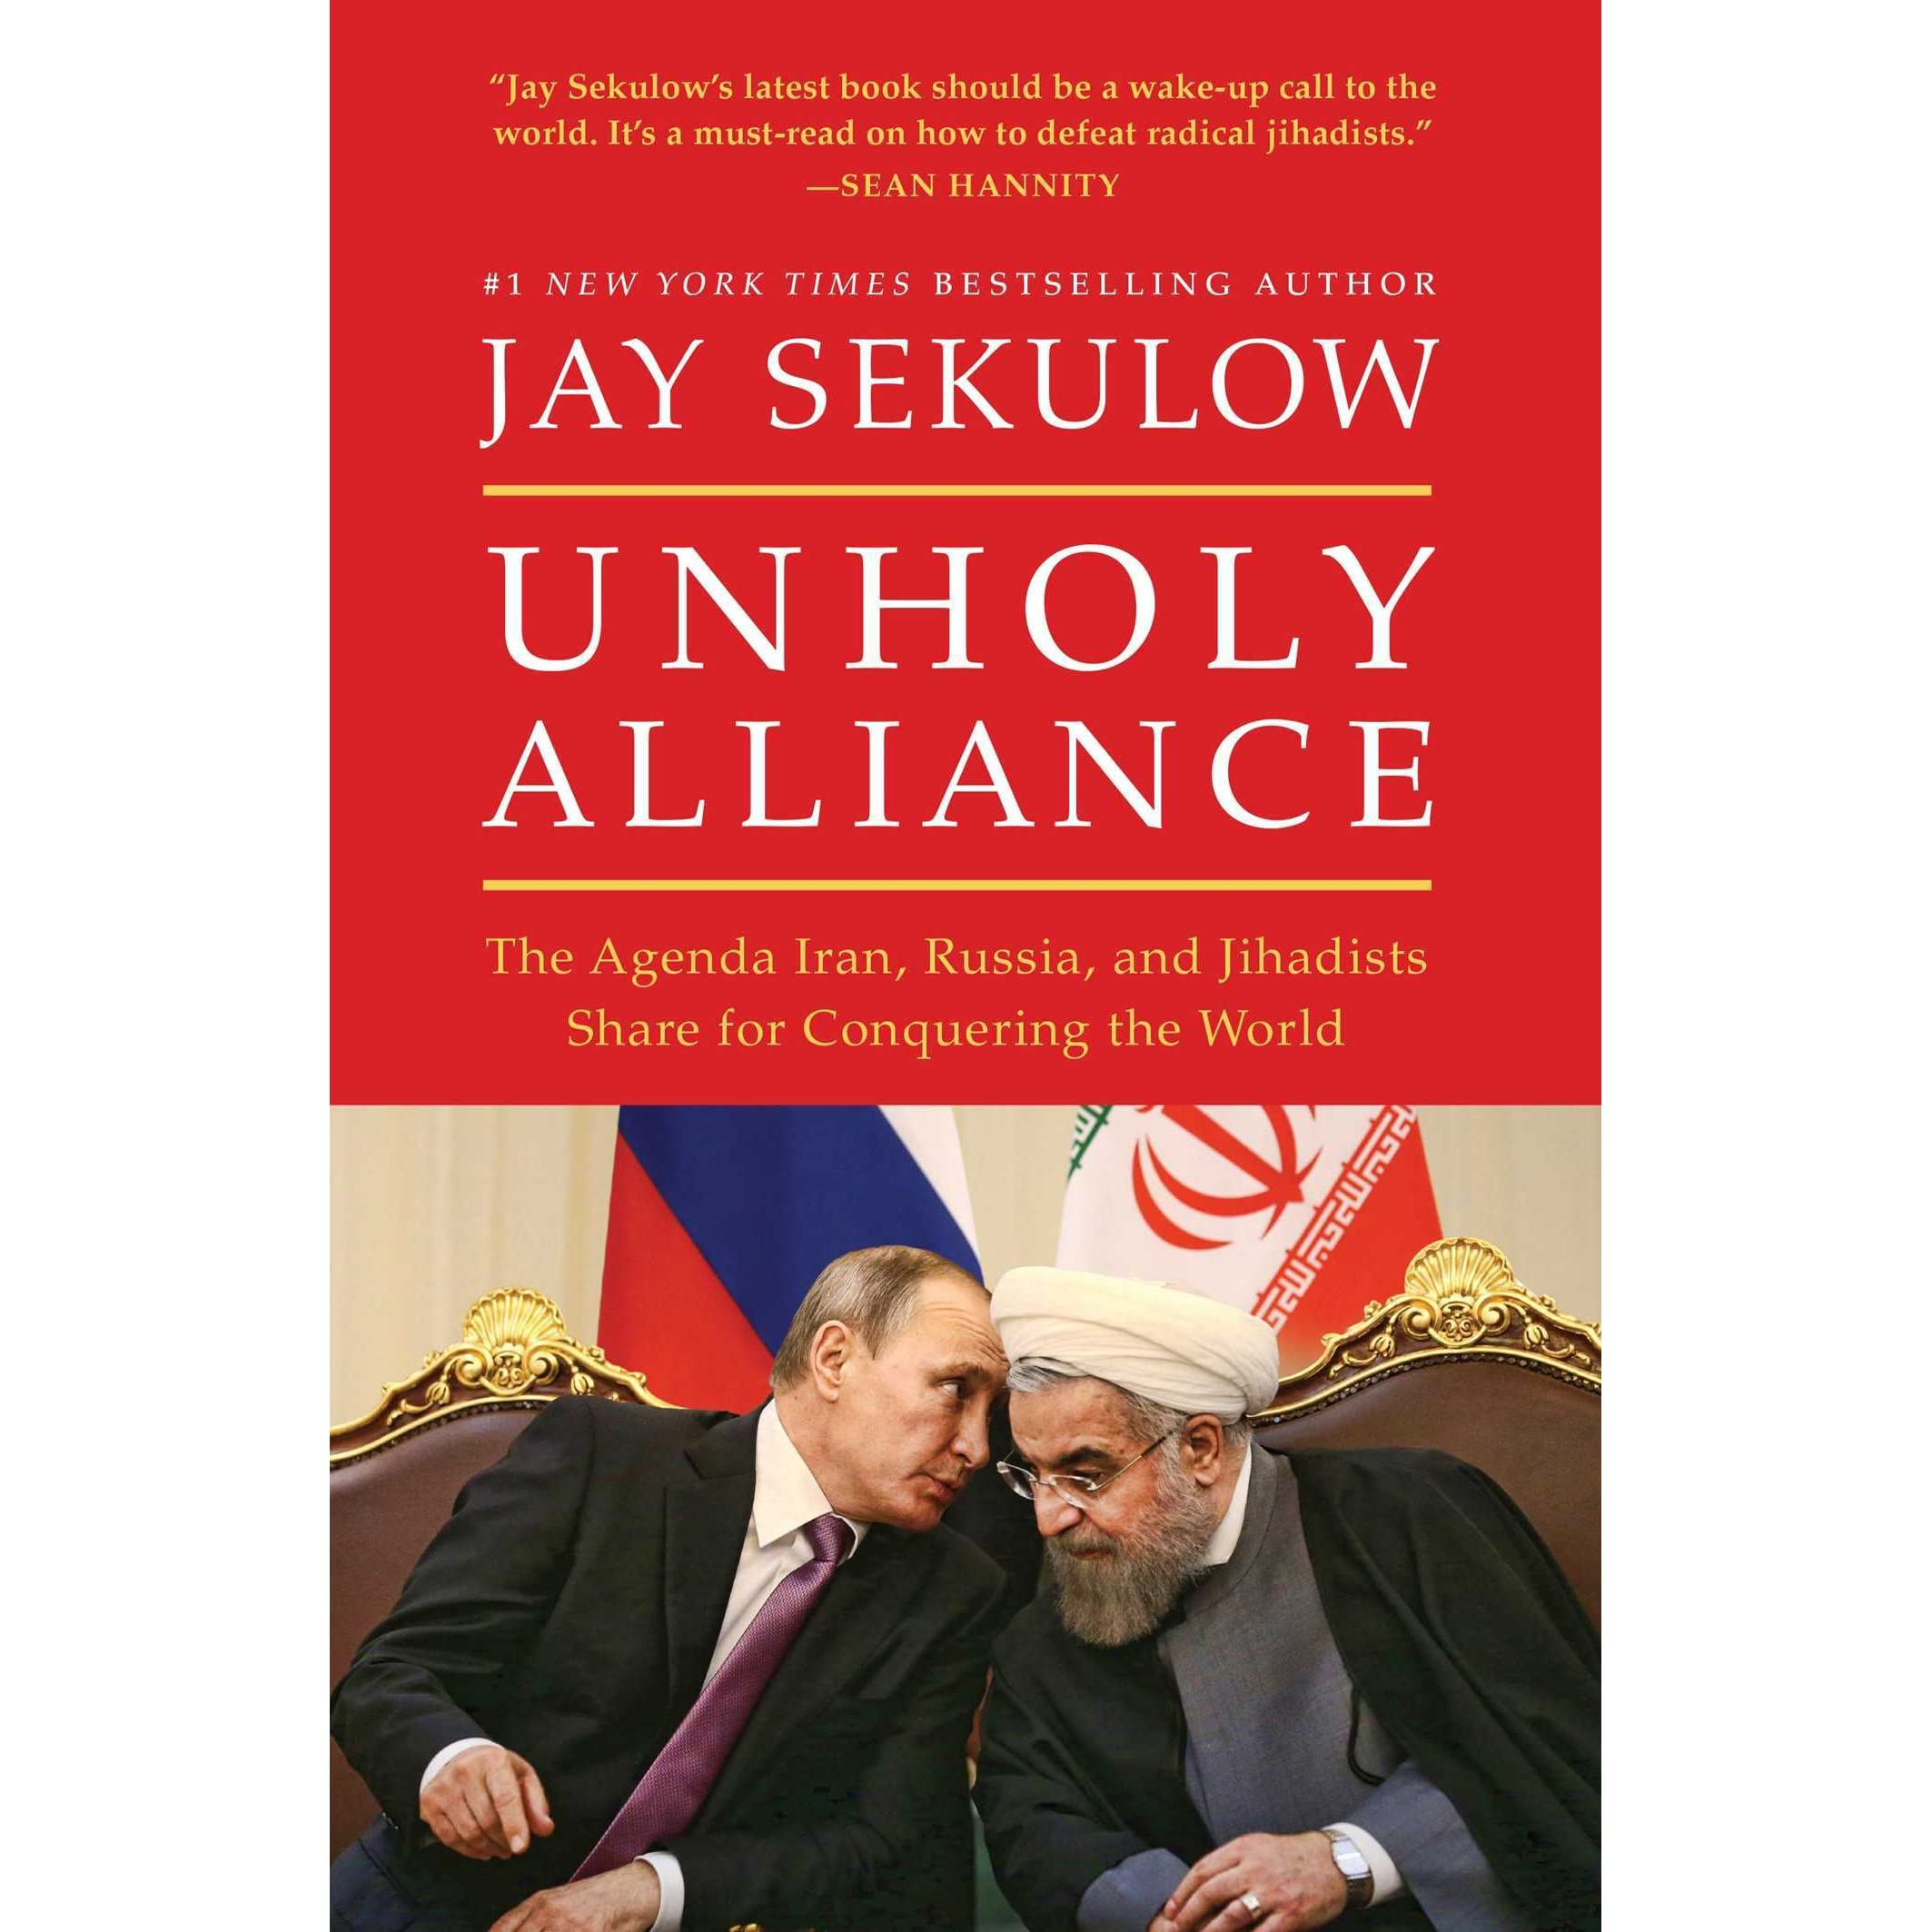 Unholy Alliance: The Agenda Iran, Russia, and Jihadists Share for  Conquering the World by Jay Sekulow